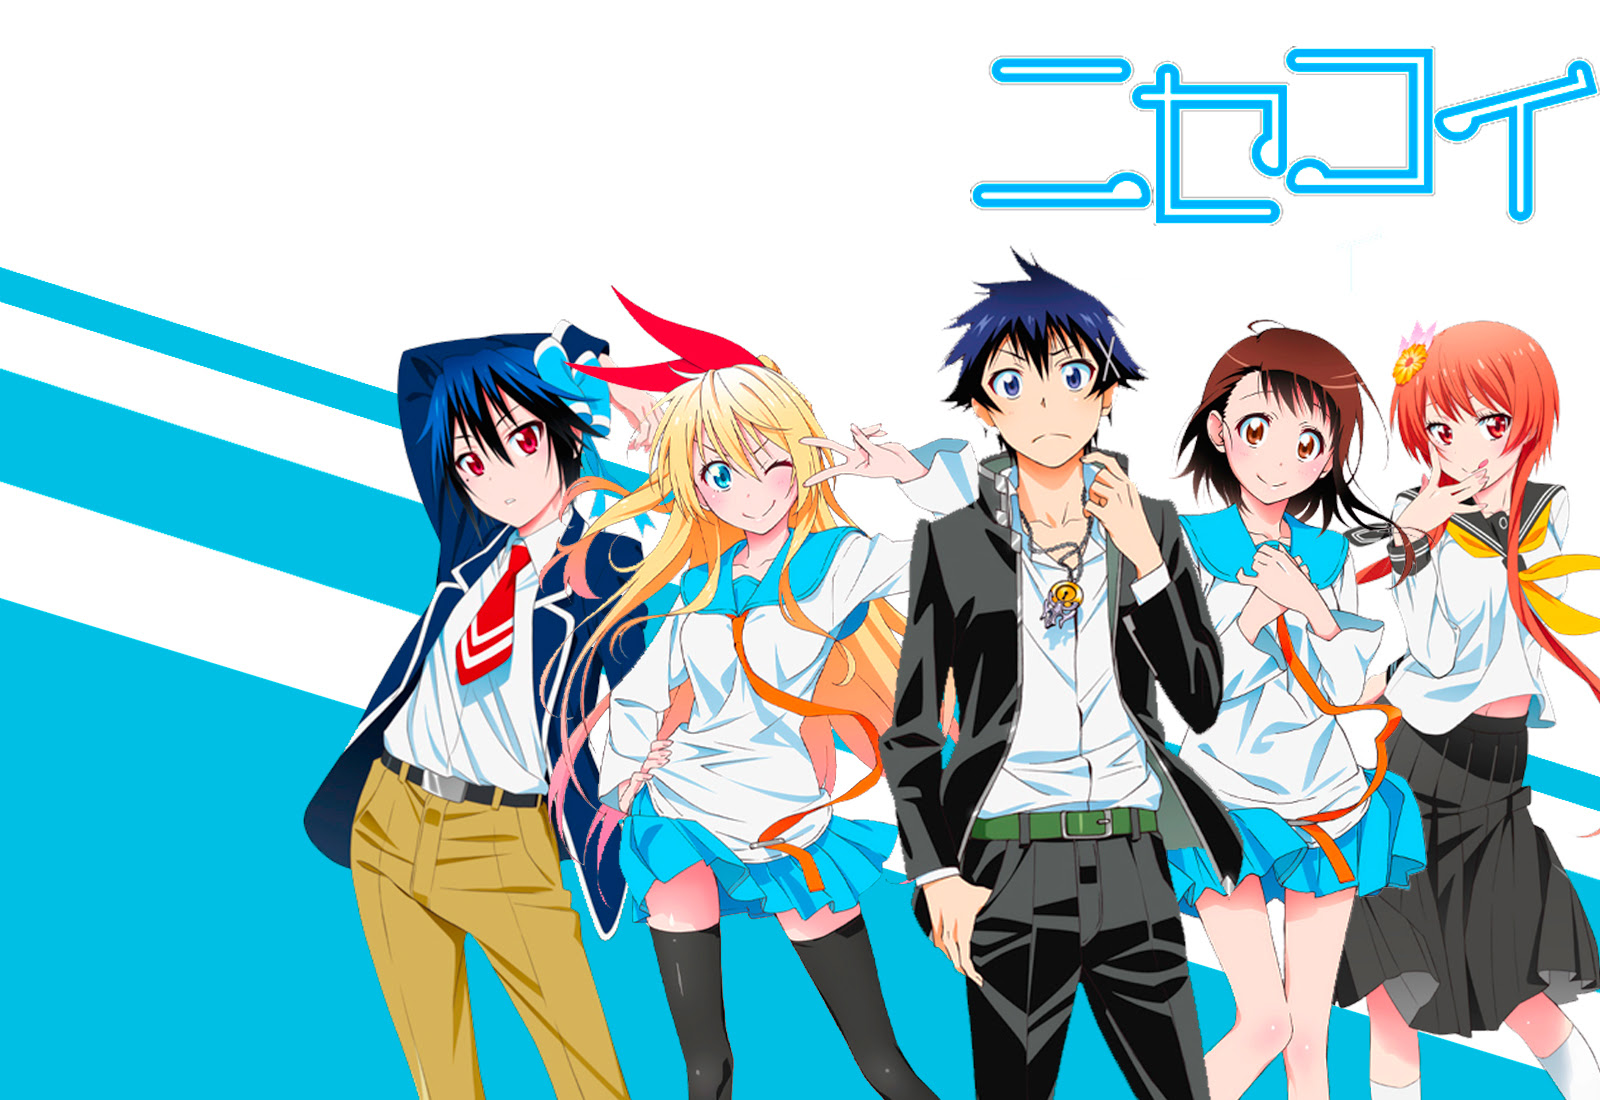 Unduh 44+ Wallpaper Anime Hd Nisekoi HD Terbaik